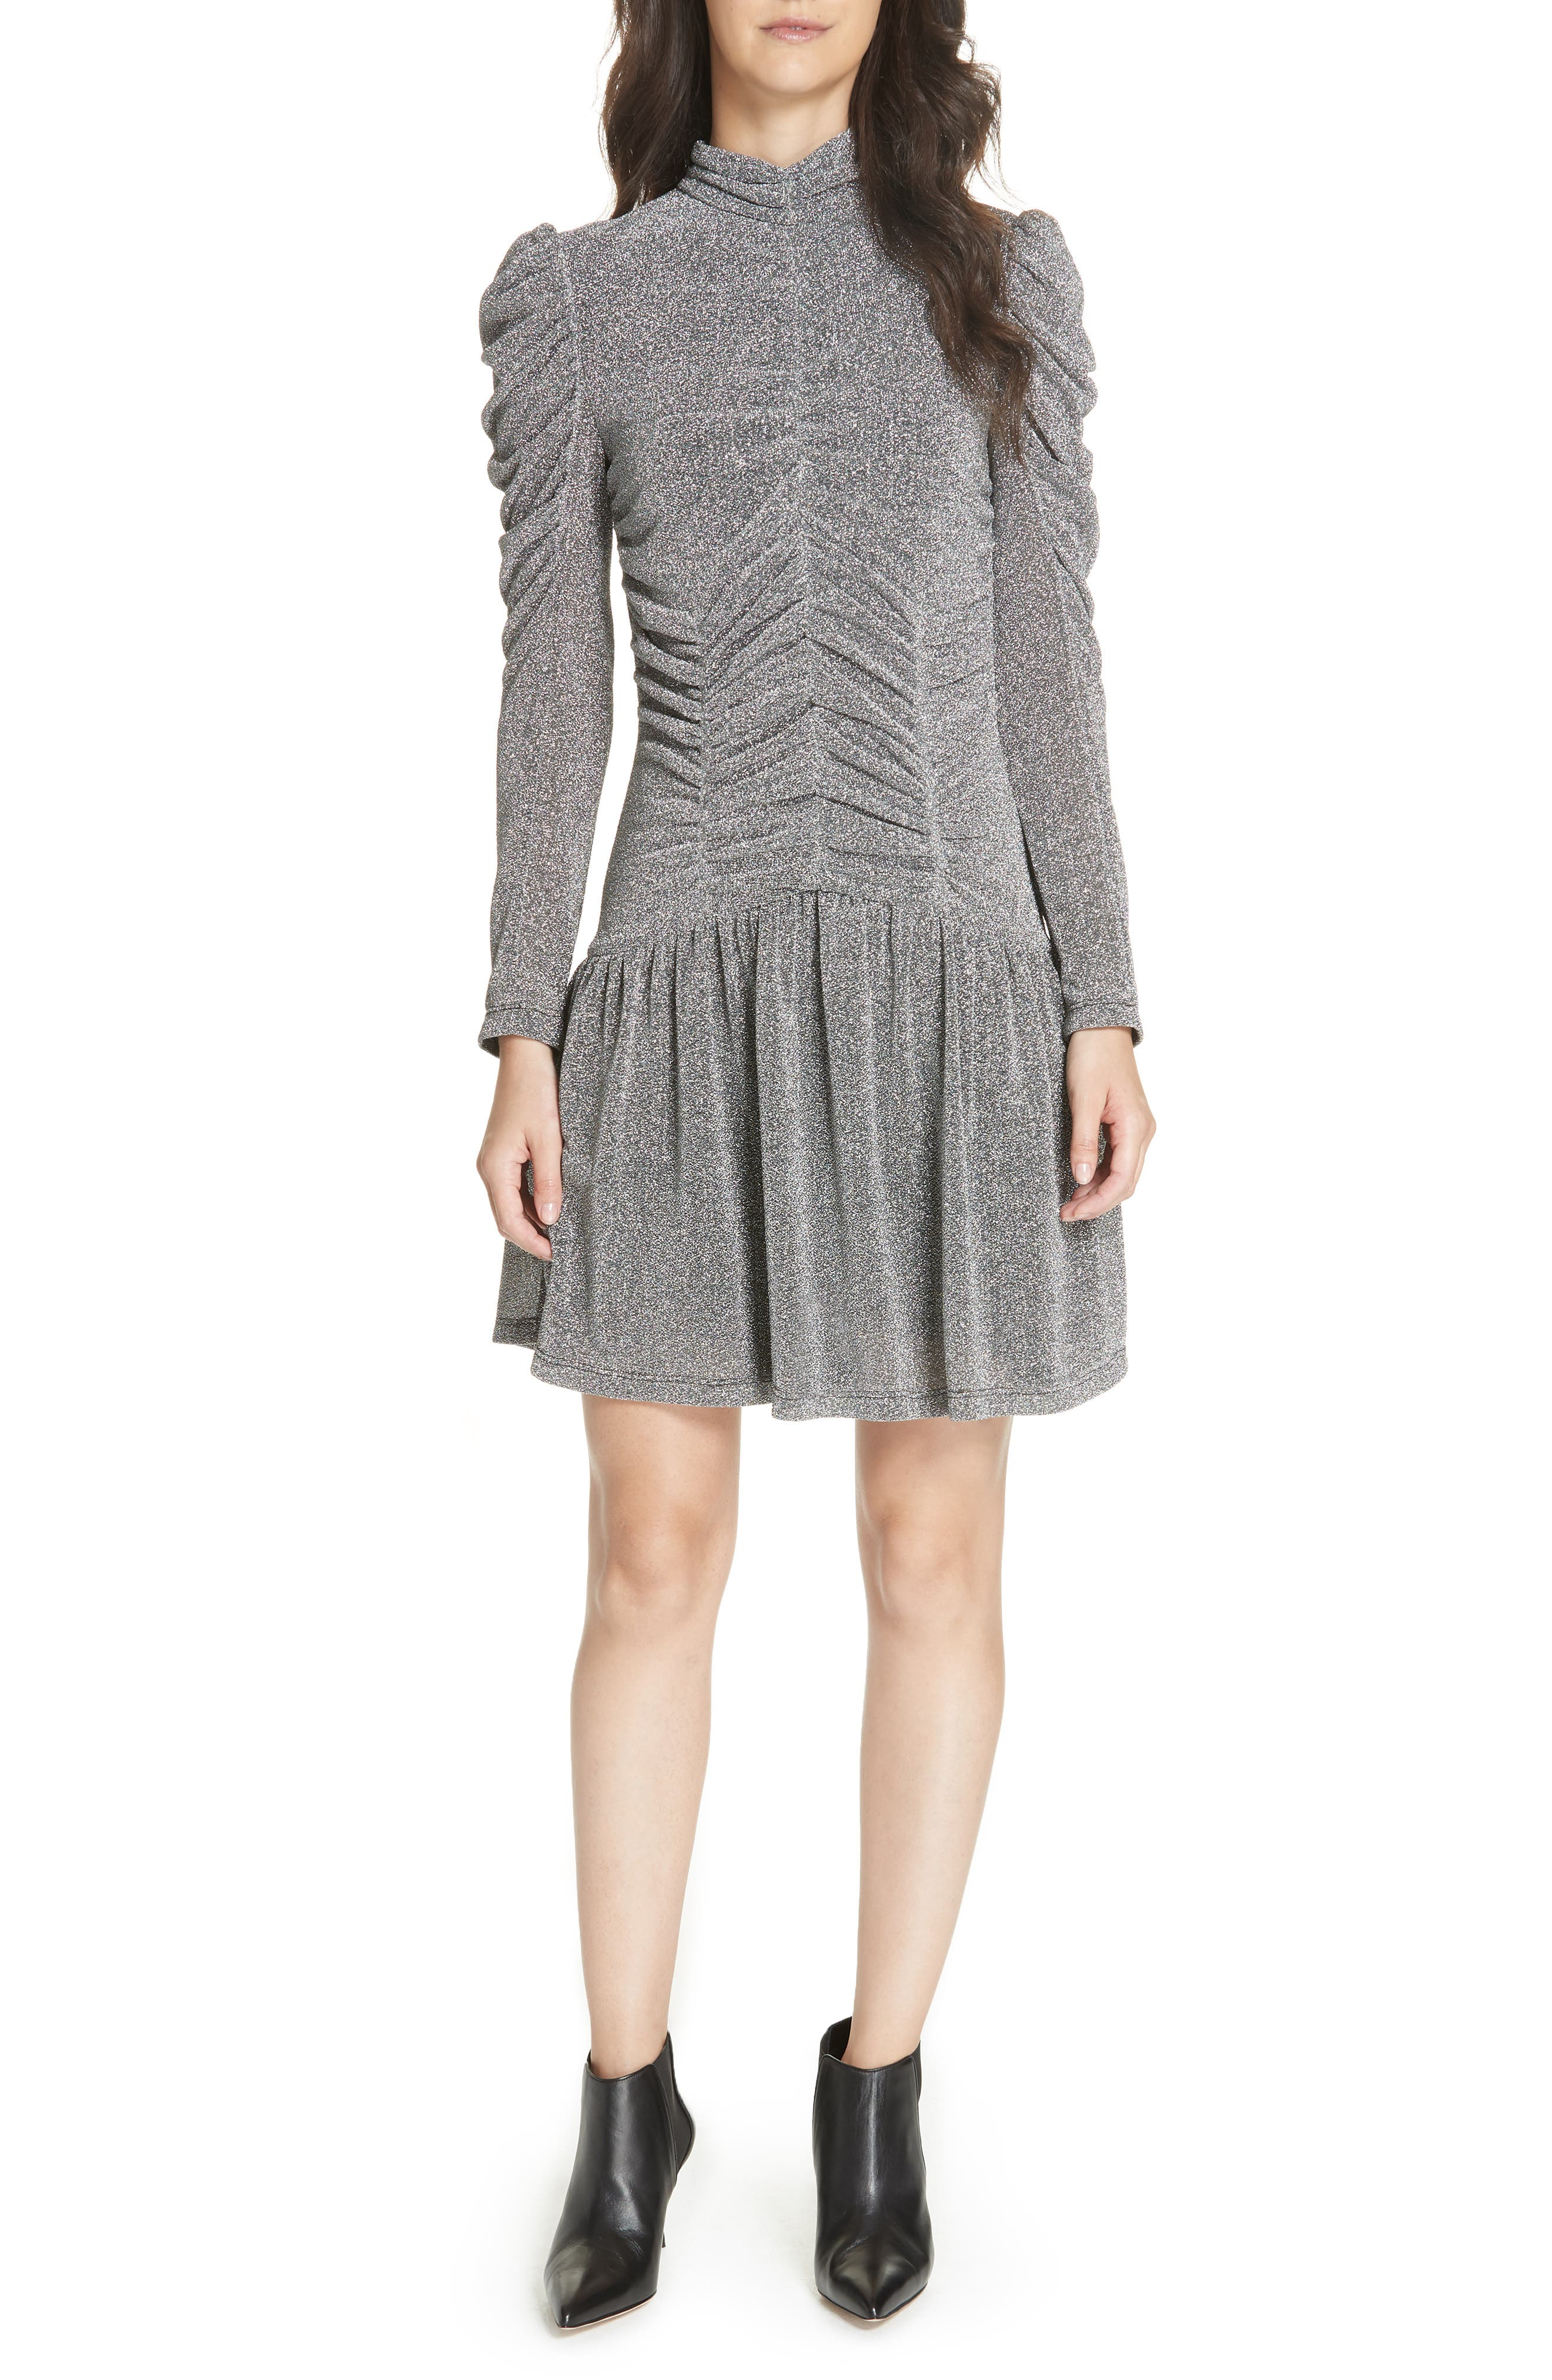 REBECCA TAYLOR Gathered Metallic Jersey Dress, Main, color, 043